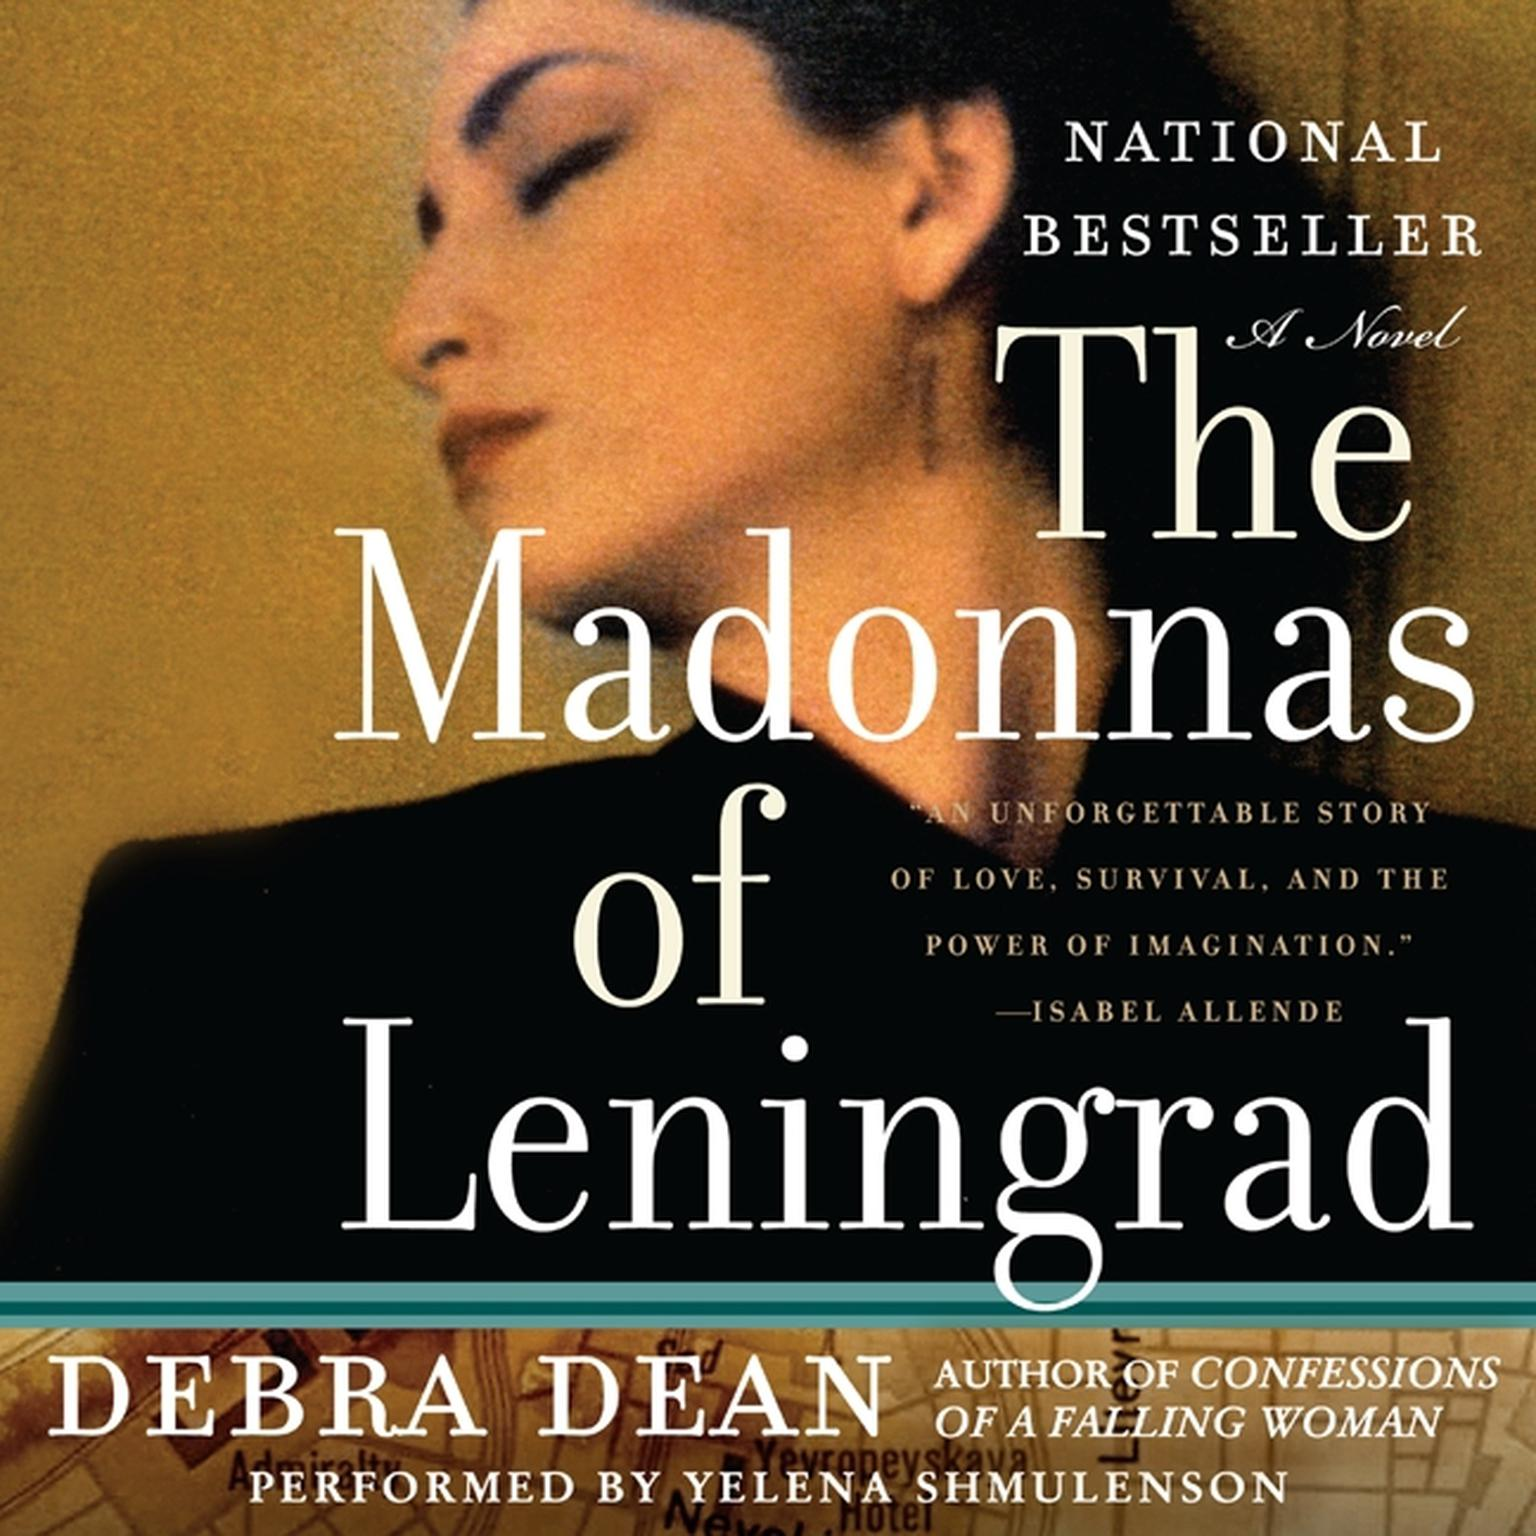 Printable The Madonnas of Leningrad Audiobook Cover Art